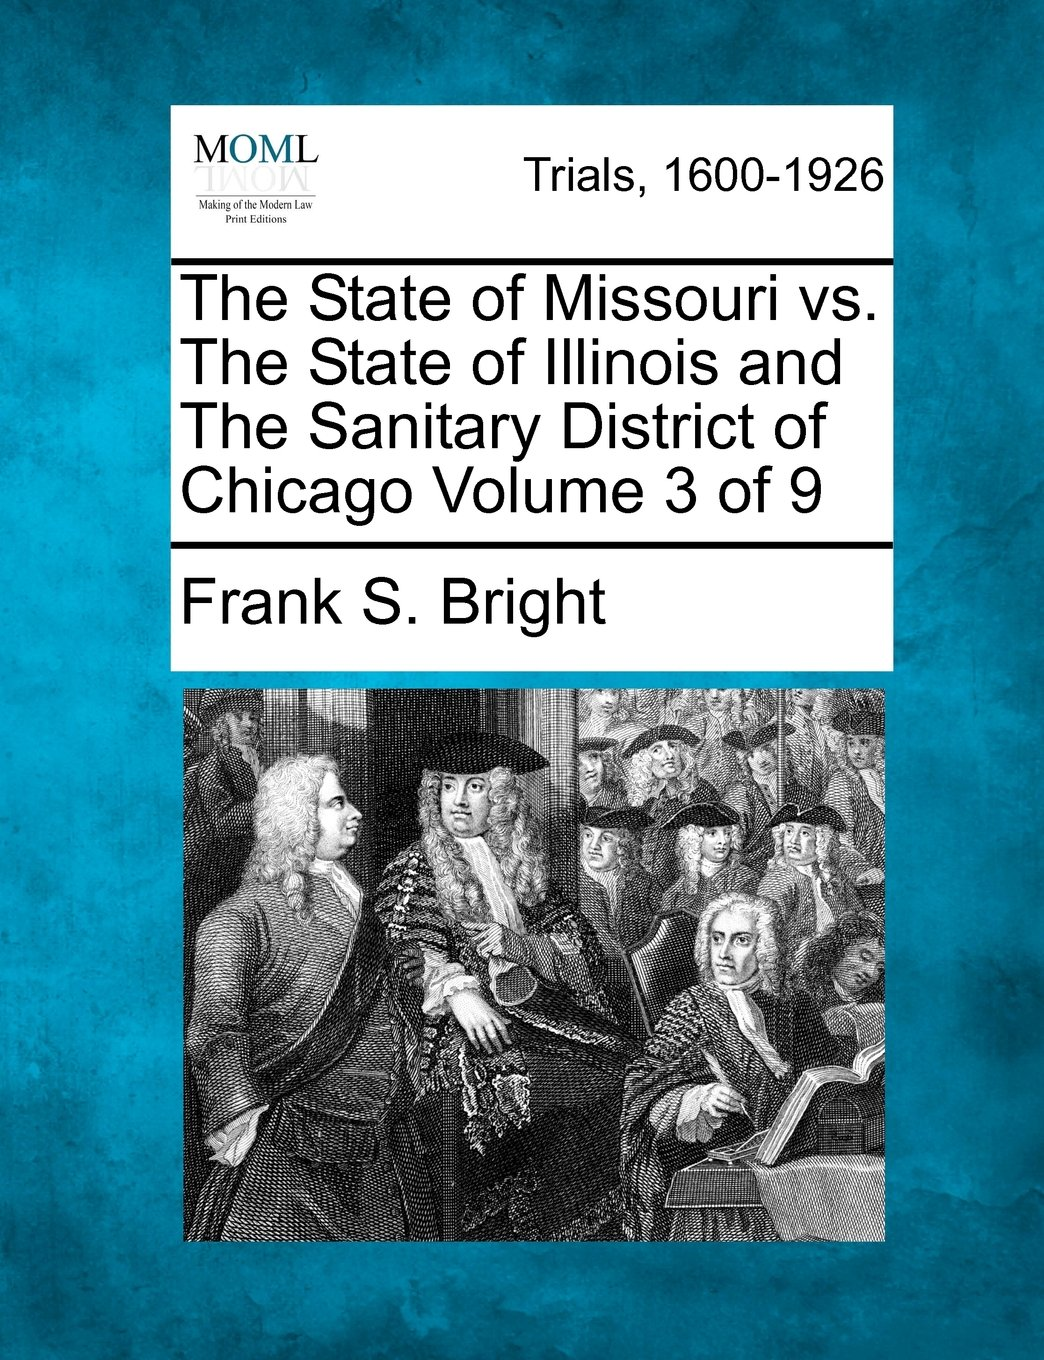 The State of Missouri vs. The State of Illinois and The Sanitary District of Chicago Volume 3 of 9 pdf